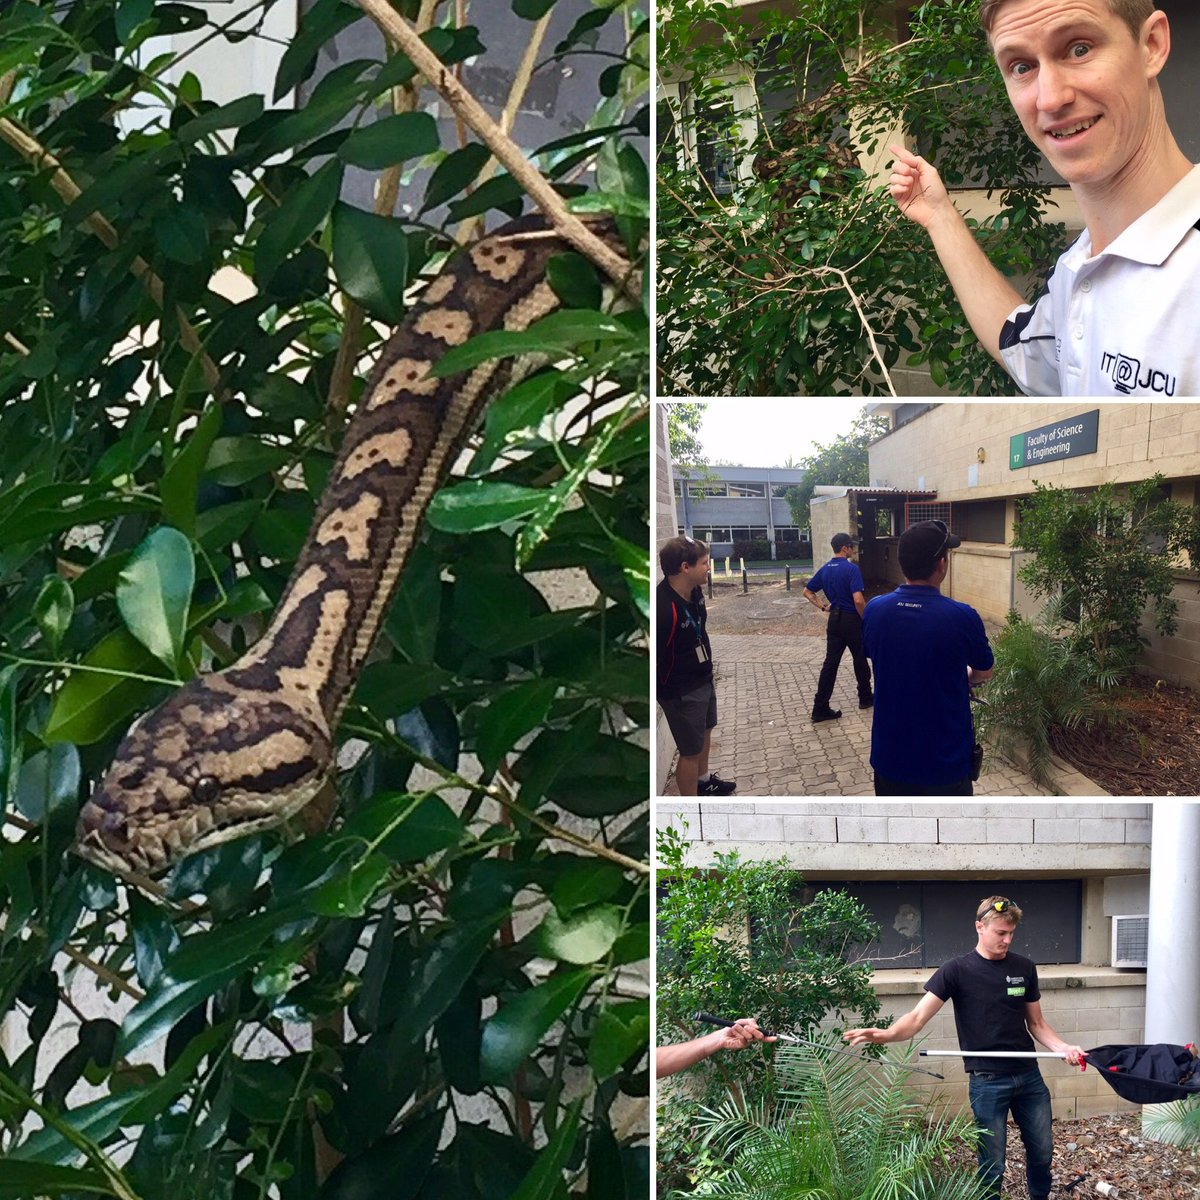 At @jcu we take teaching authentic #Python #programming seriously. #tropics #Townsville #townsvilleshines #eco #sustainability @tsv_bulletin<br>http://pic.twitter.com/GOgRIi3YTF